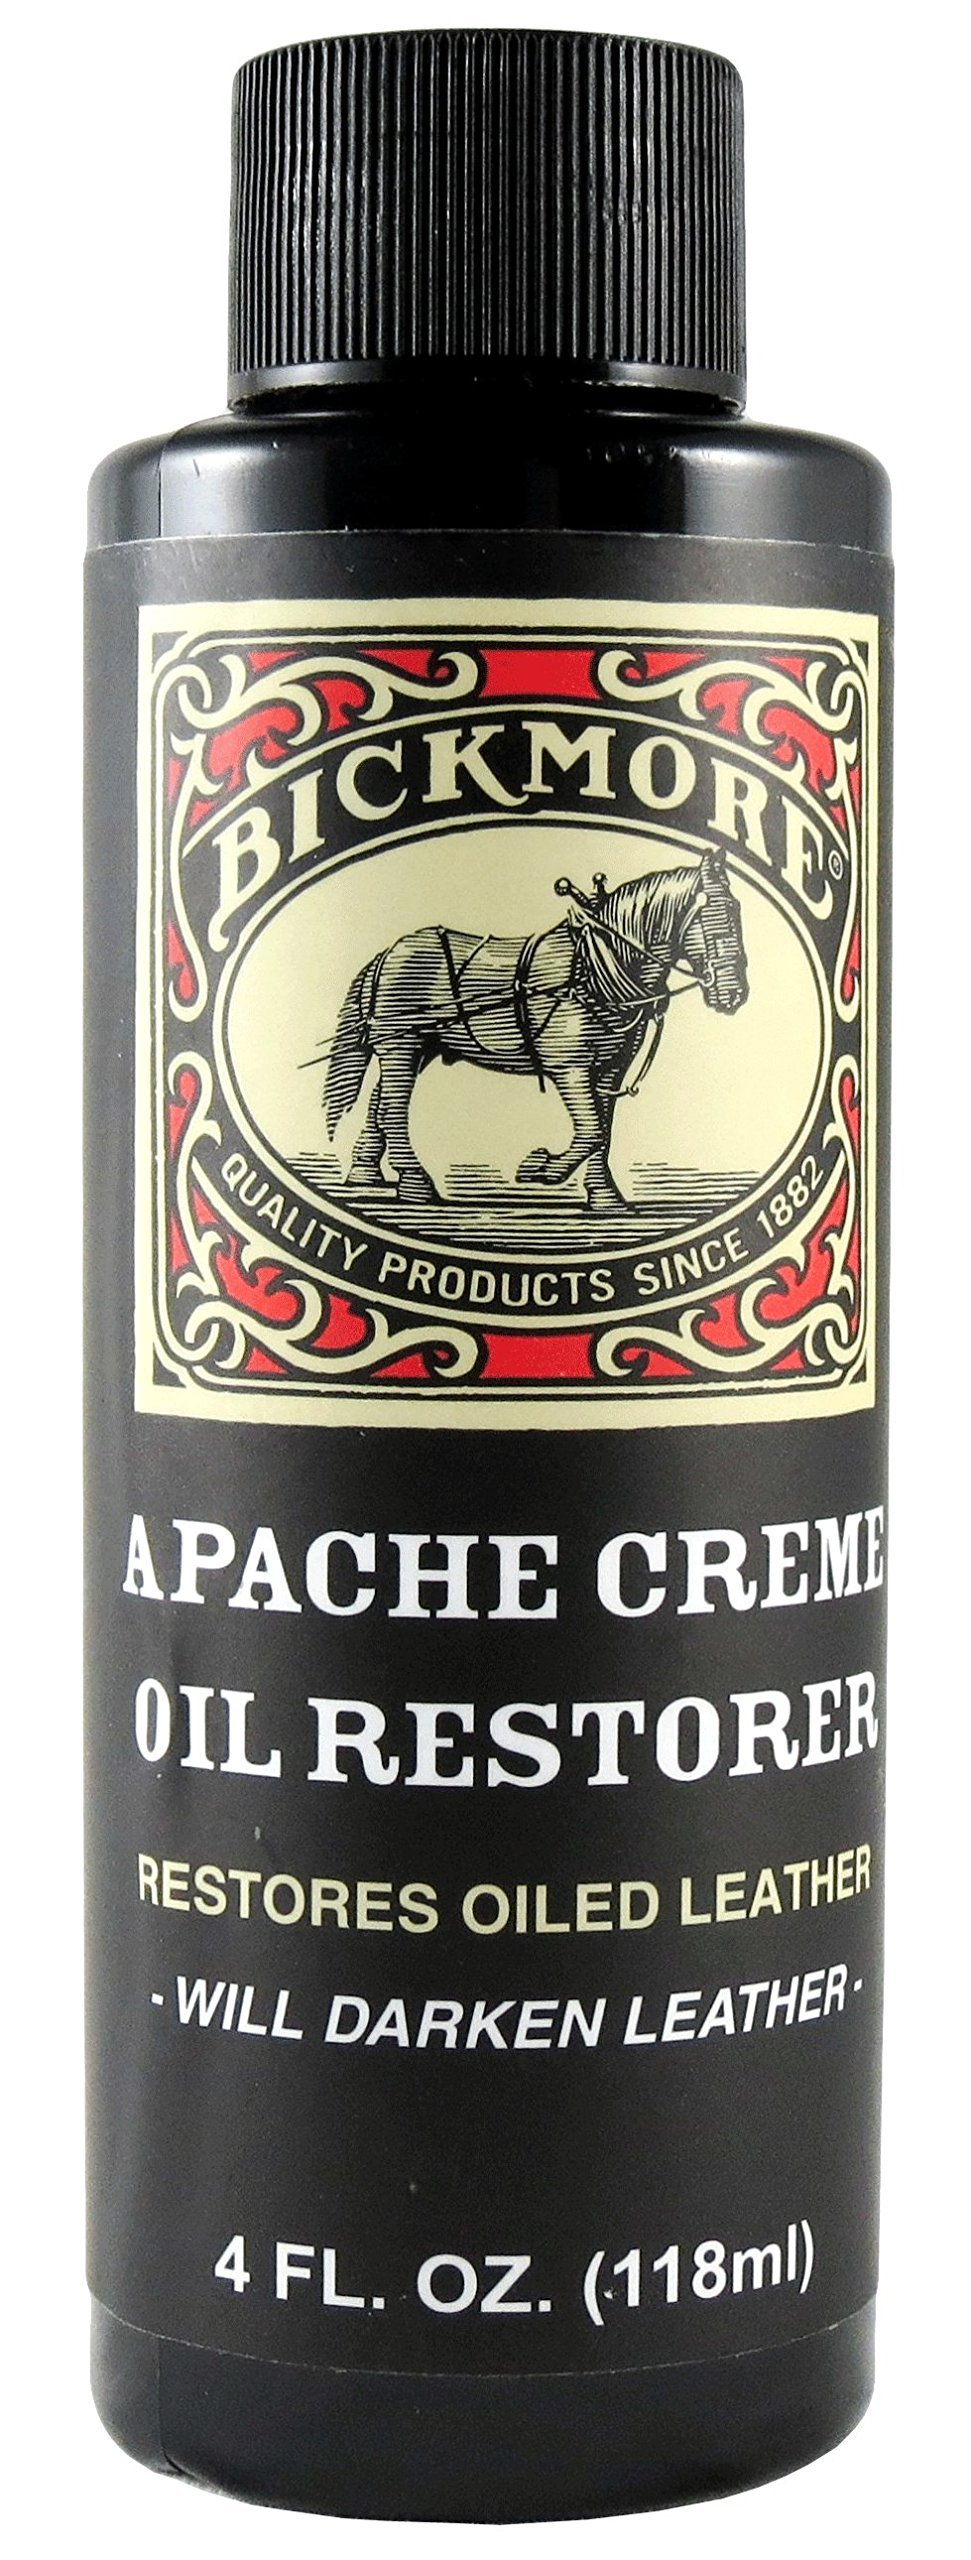 Bickmore Apache Creme Oil Restorer 4 Ounce - Restores Oiled Leather - Great for Apache or Distressed Leather Boots, Shoes, Bags, and More by Bickmore